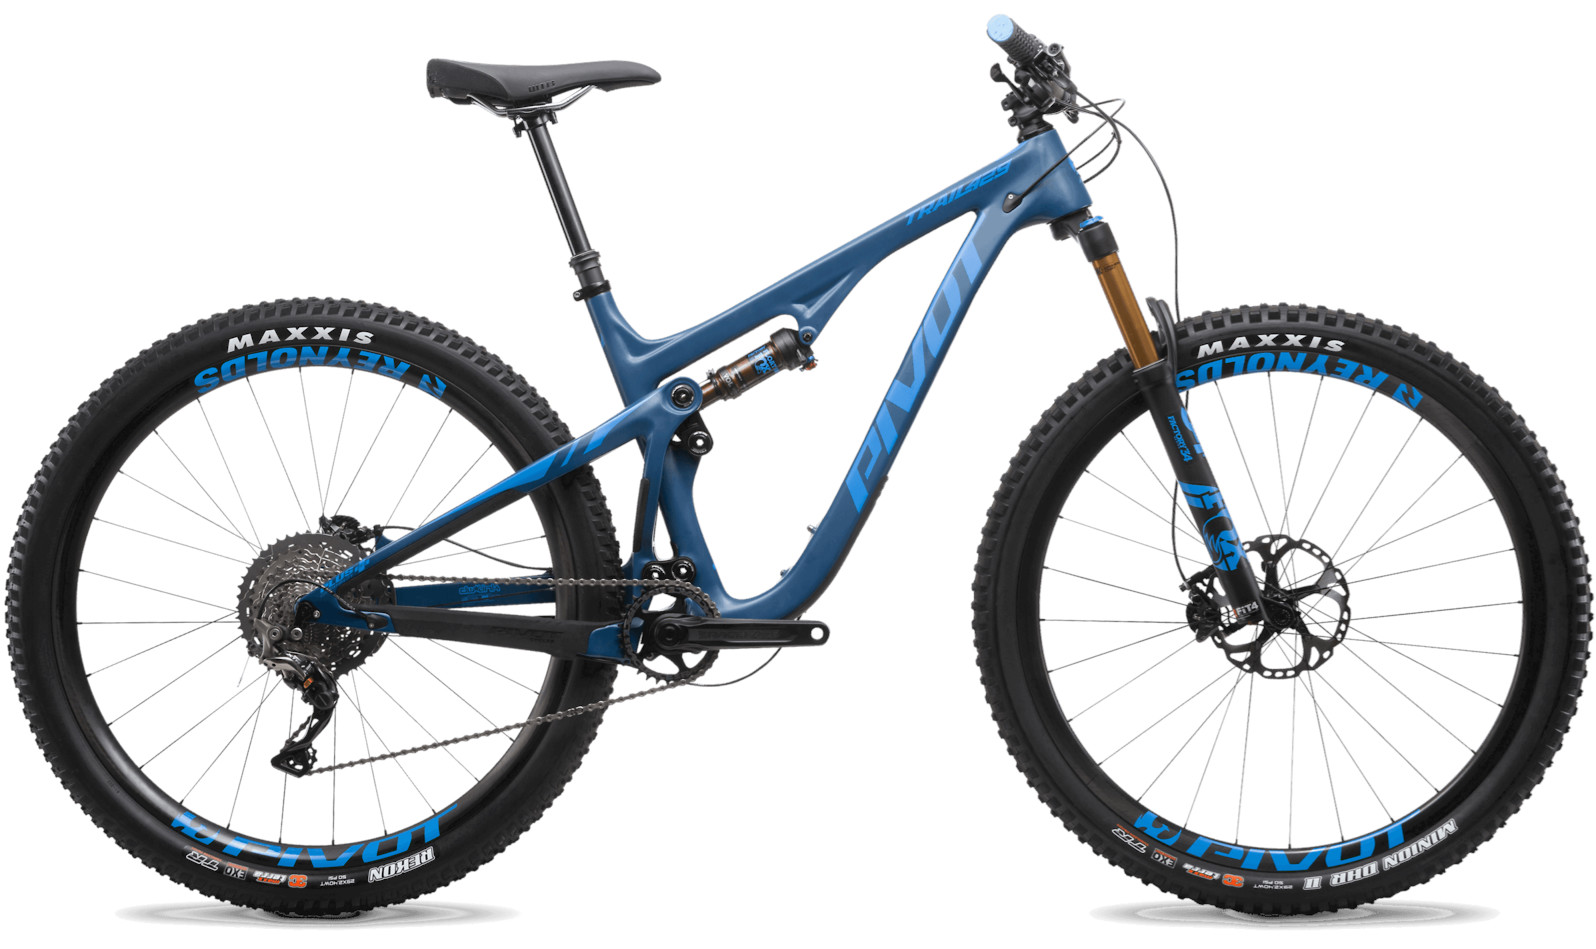 2020 Pivot Trail 429 Steel Blue (29 Team XTR build pictured)